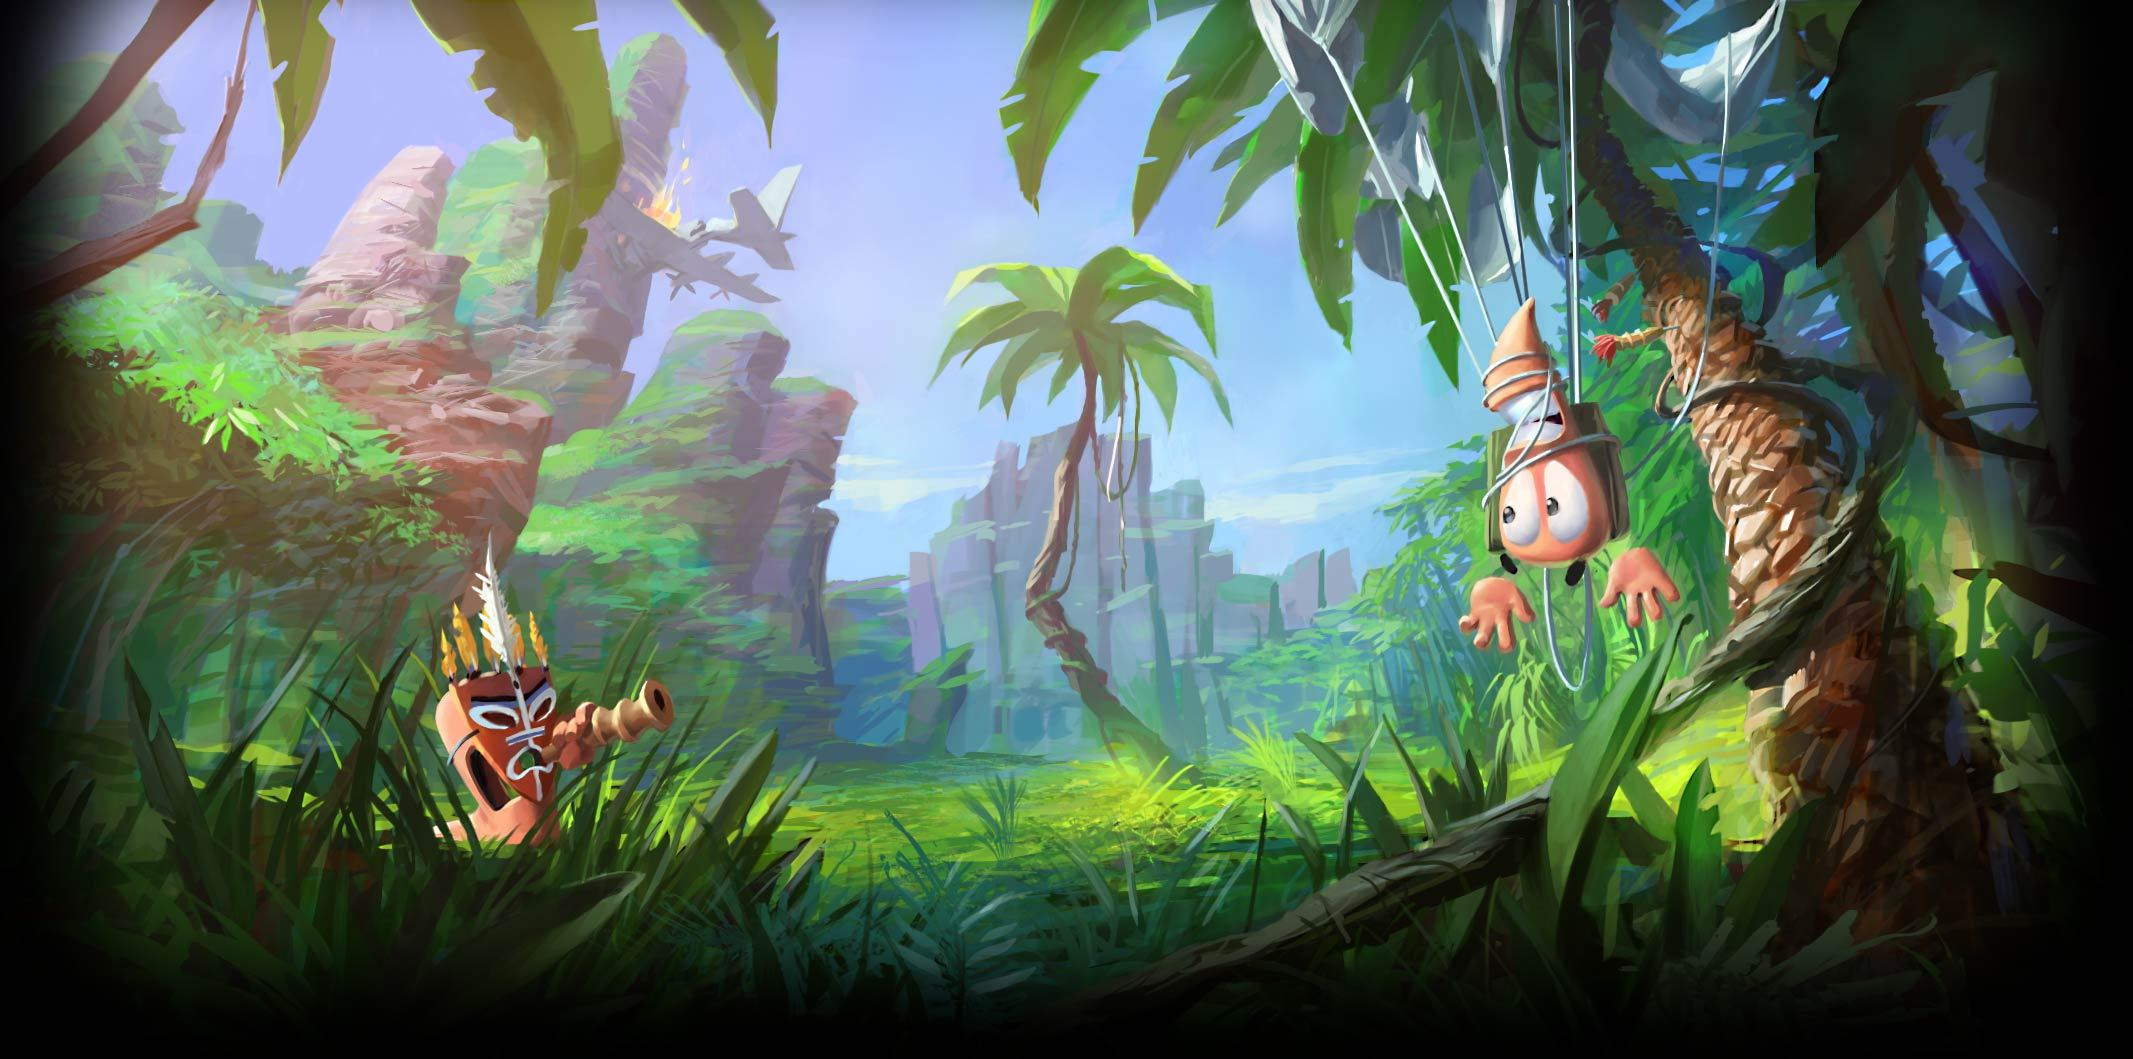 Worms Video Game Wallpaper and Background Image 2133x1059 ID 2133x1059